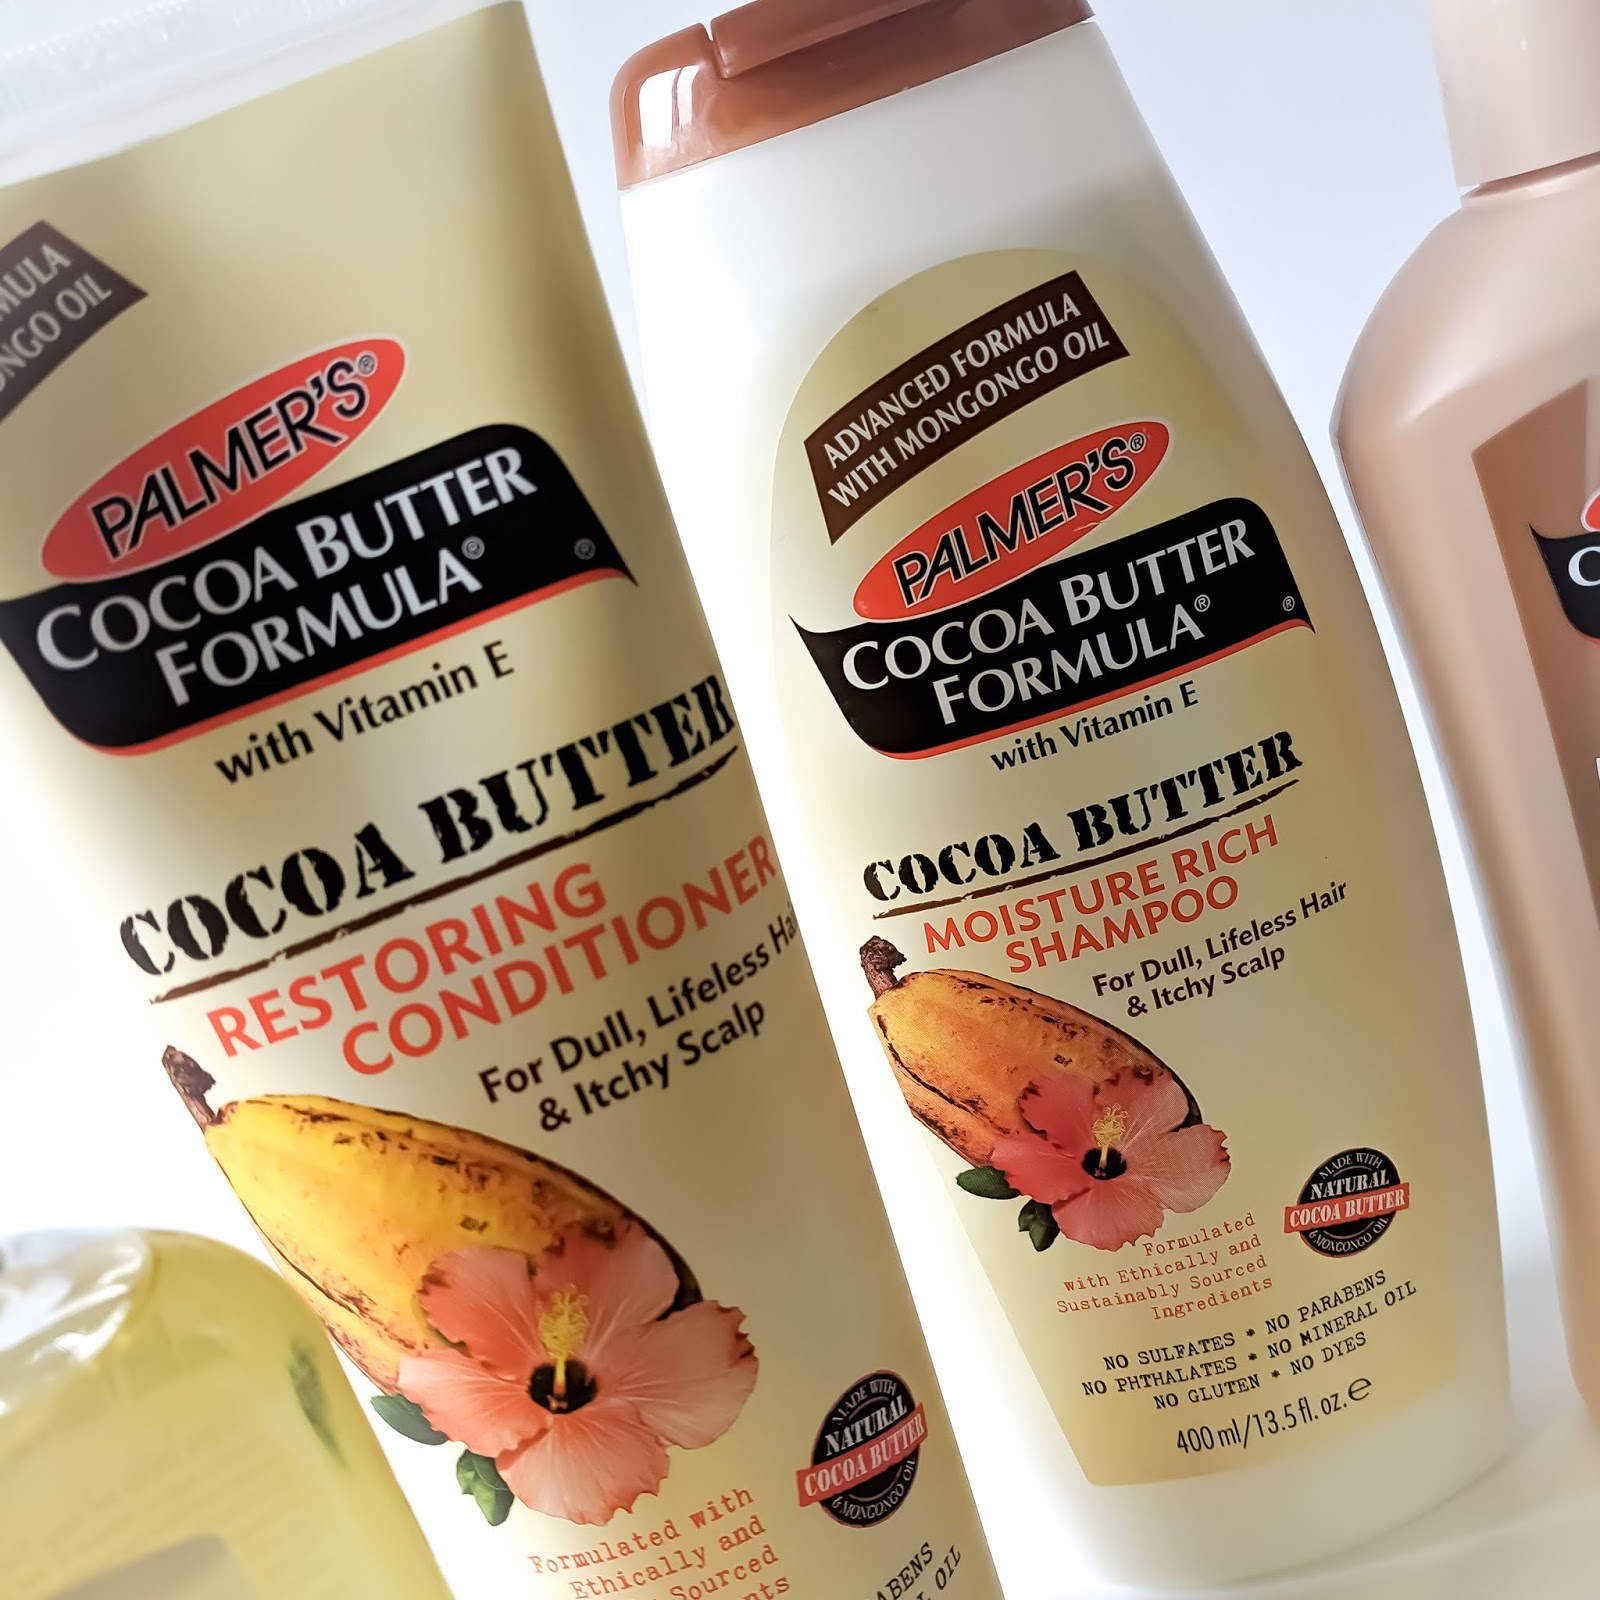 Palmer's Cocoa Butter Shampoo and Conditioner